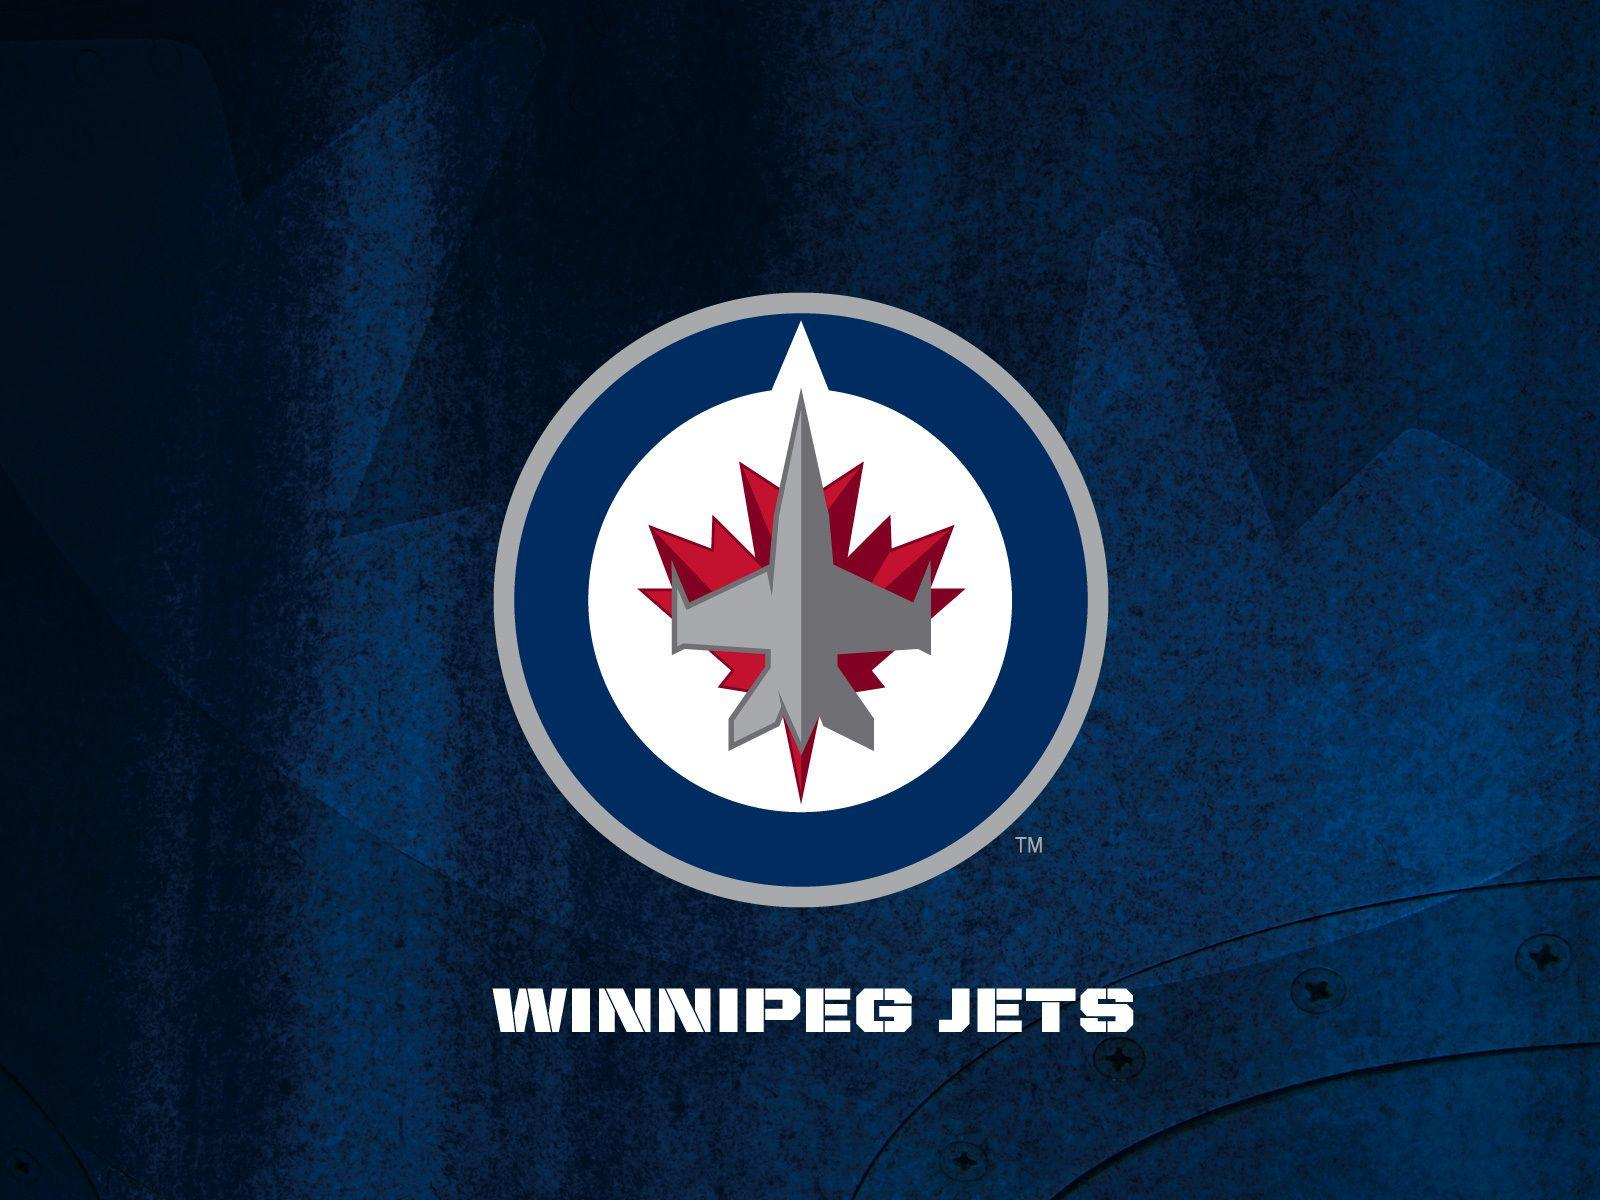 Tampa Bay Lightning Iphone Wallpaper Winnipeg Jets Wallpapers Wallpaper Cave